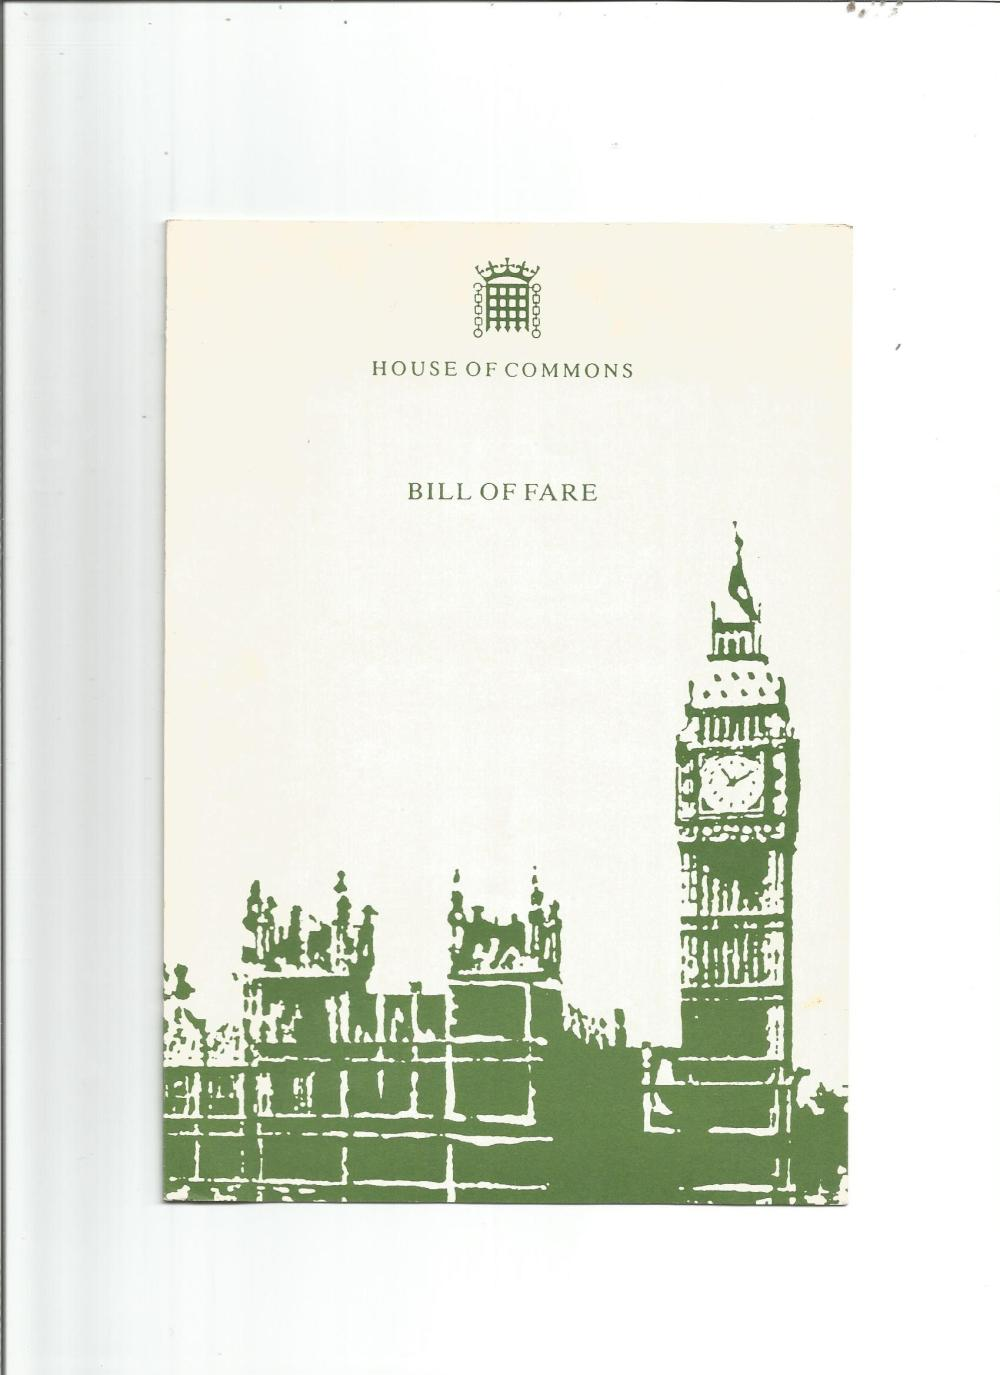 House of Commons collection. Contains 2 TLS's one signed by Jack Ashley the other by Robert Kilroy-